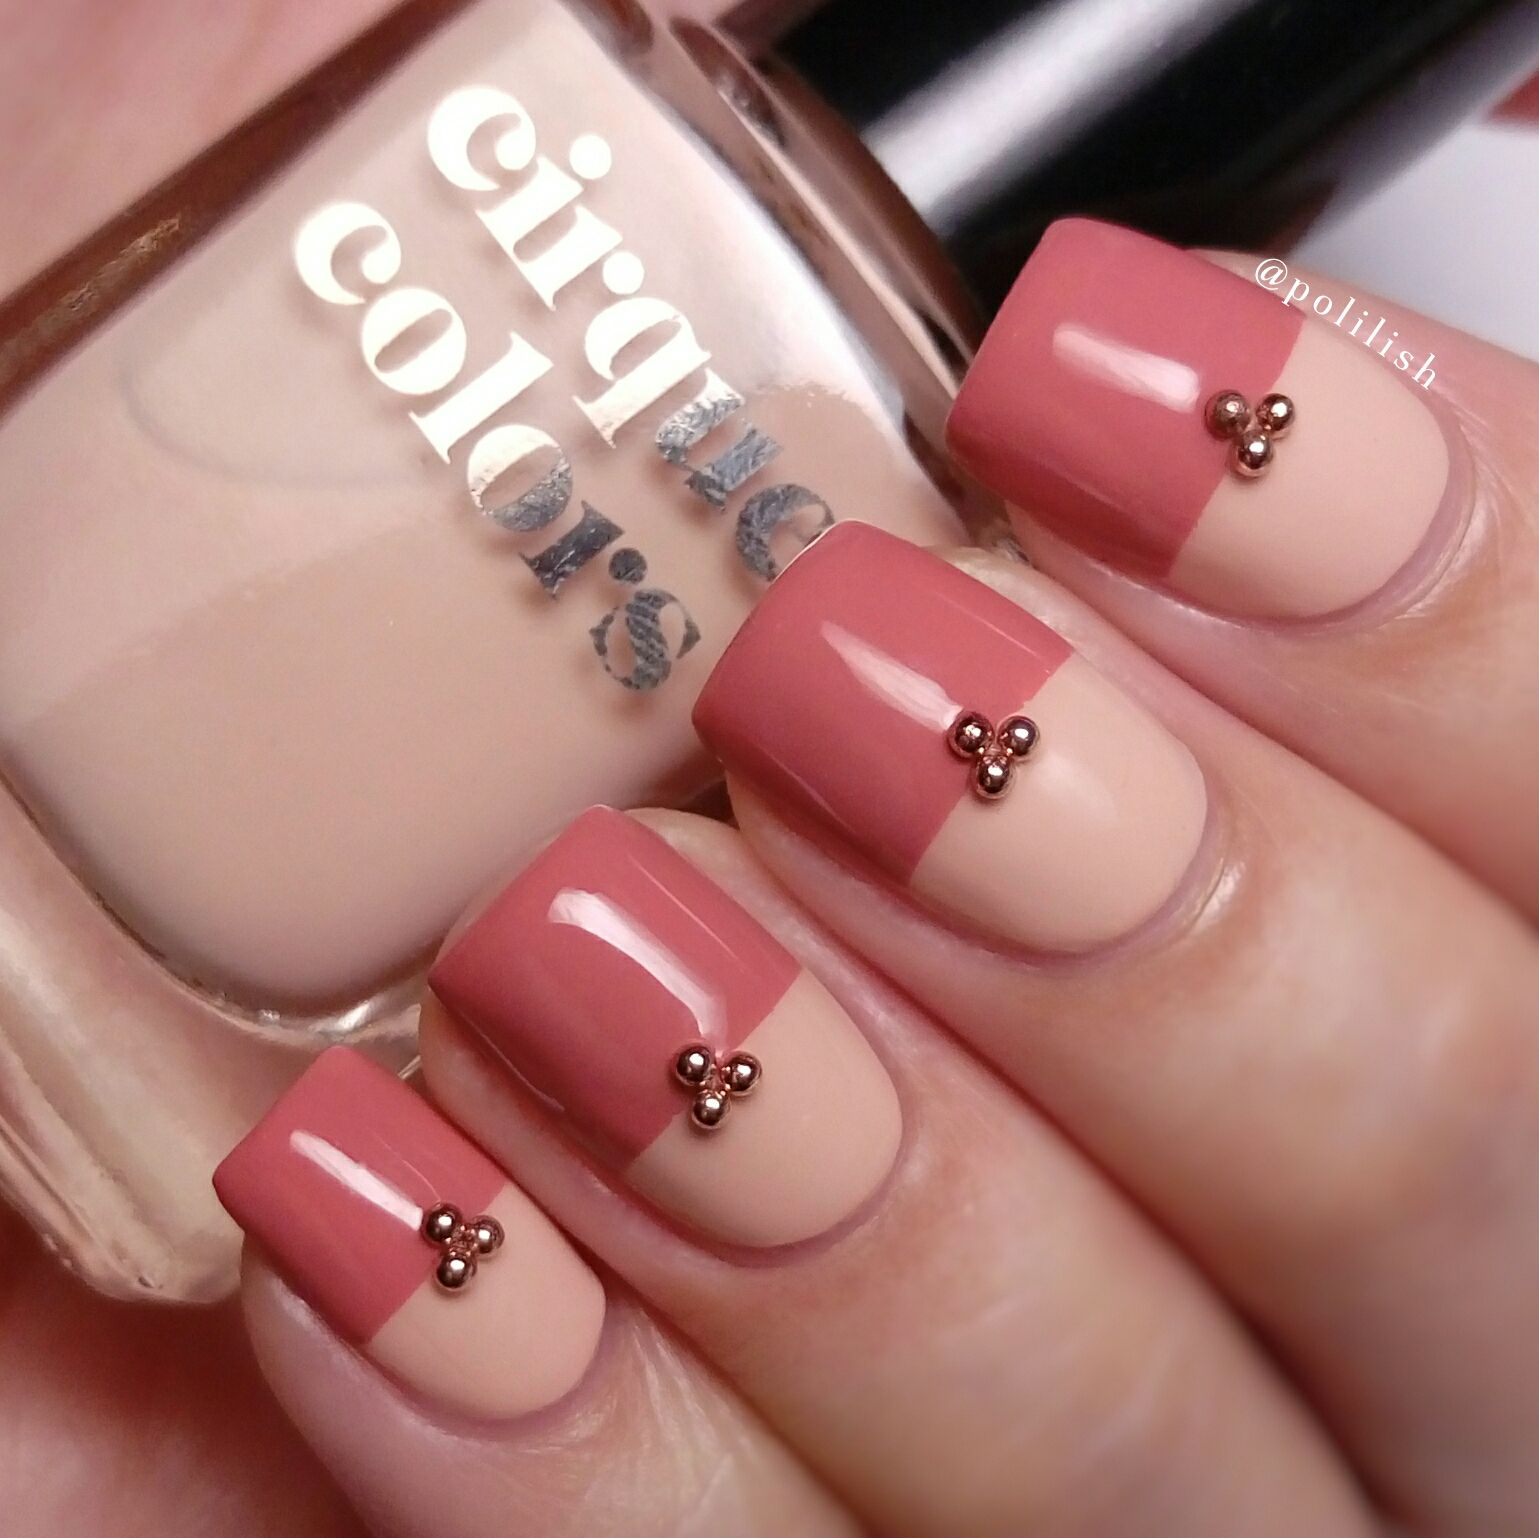 Simple Nail Art Using Nail Beads From Beautybigbang And Featuring